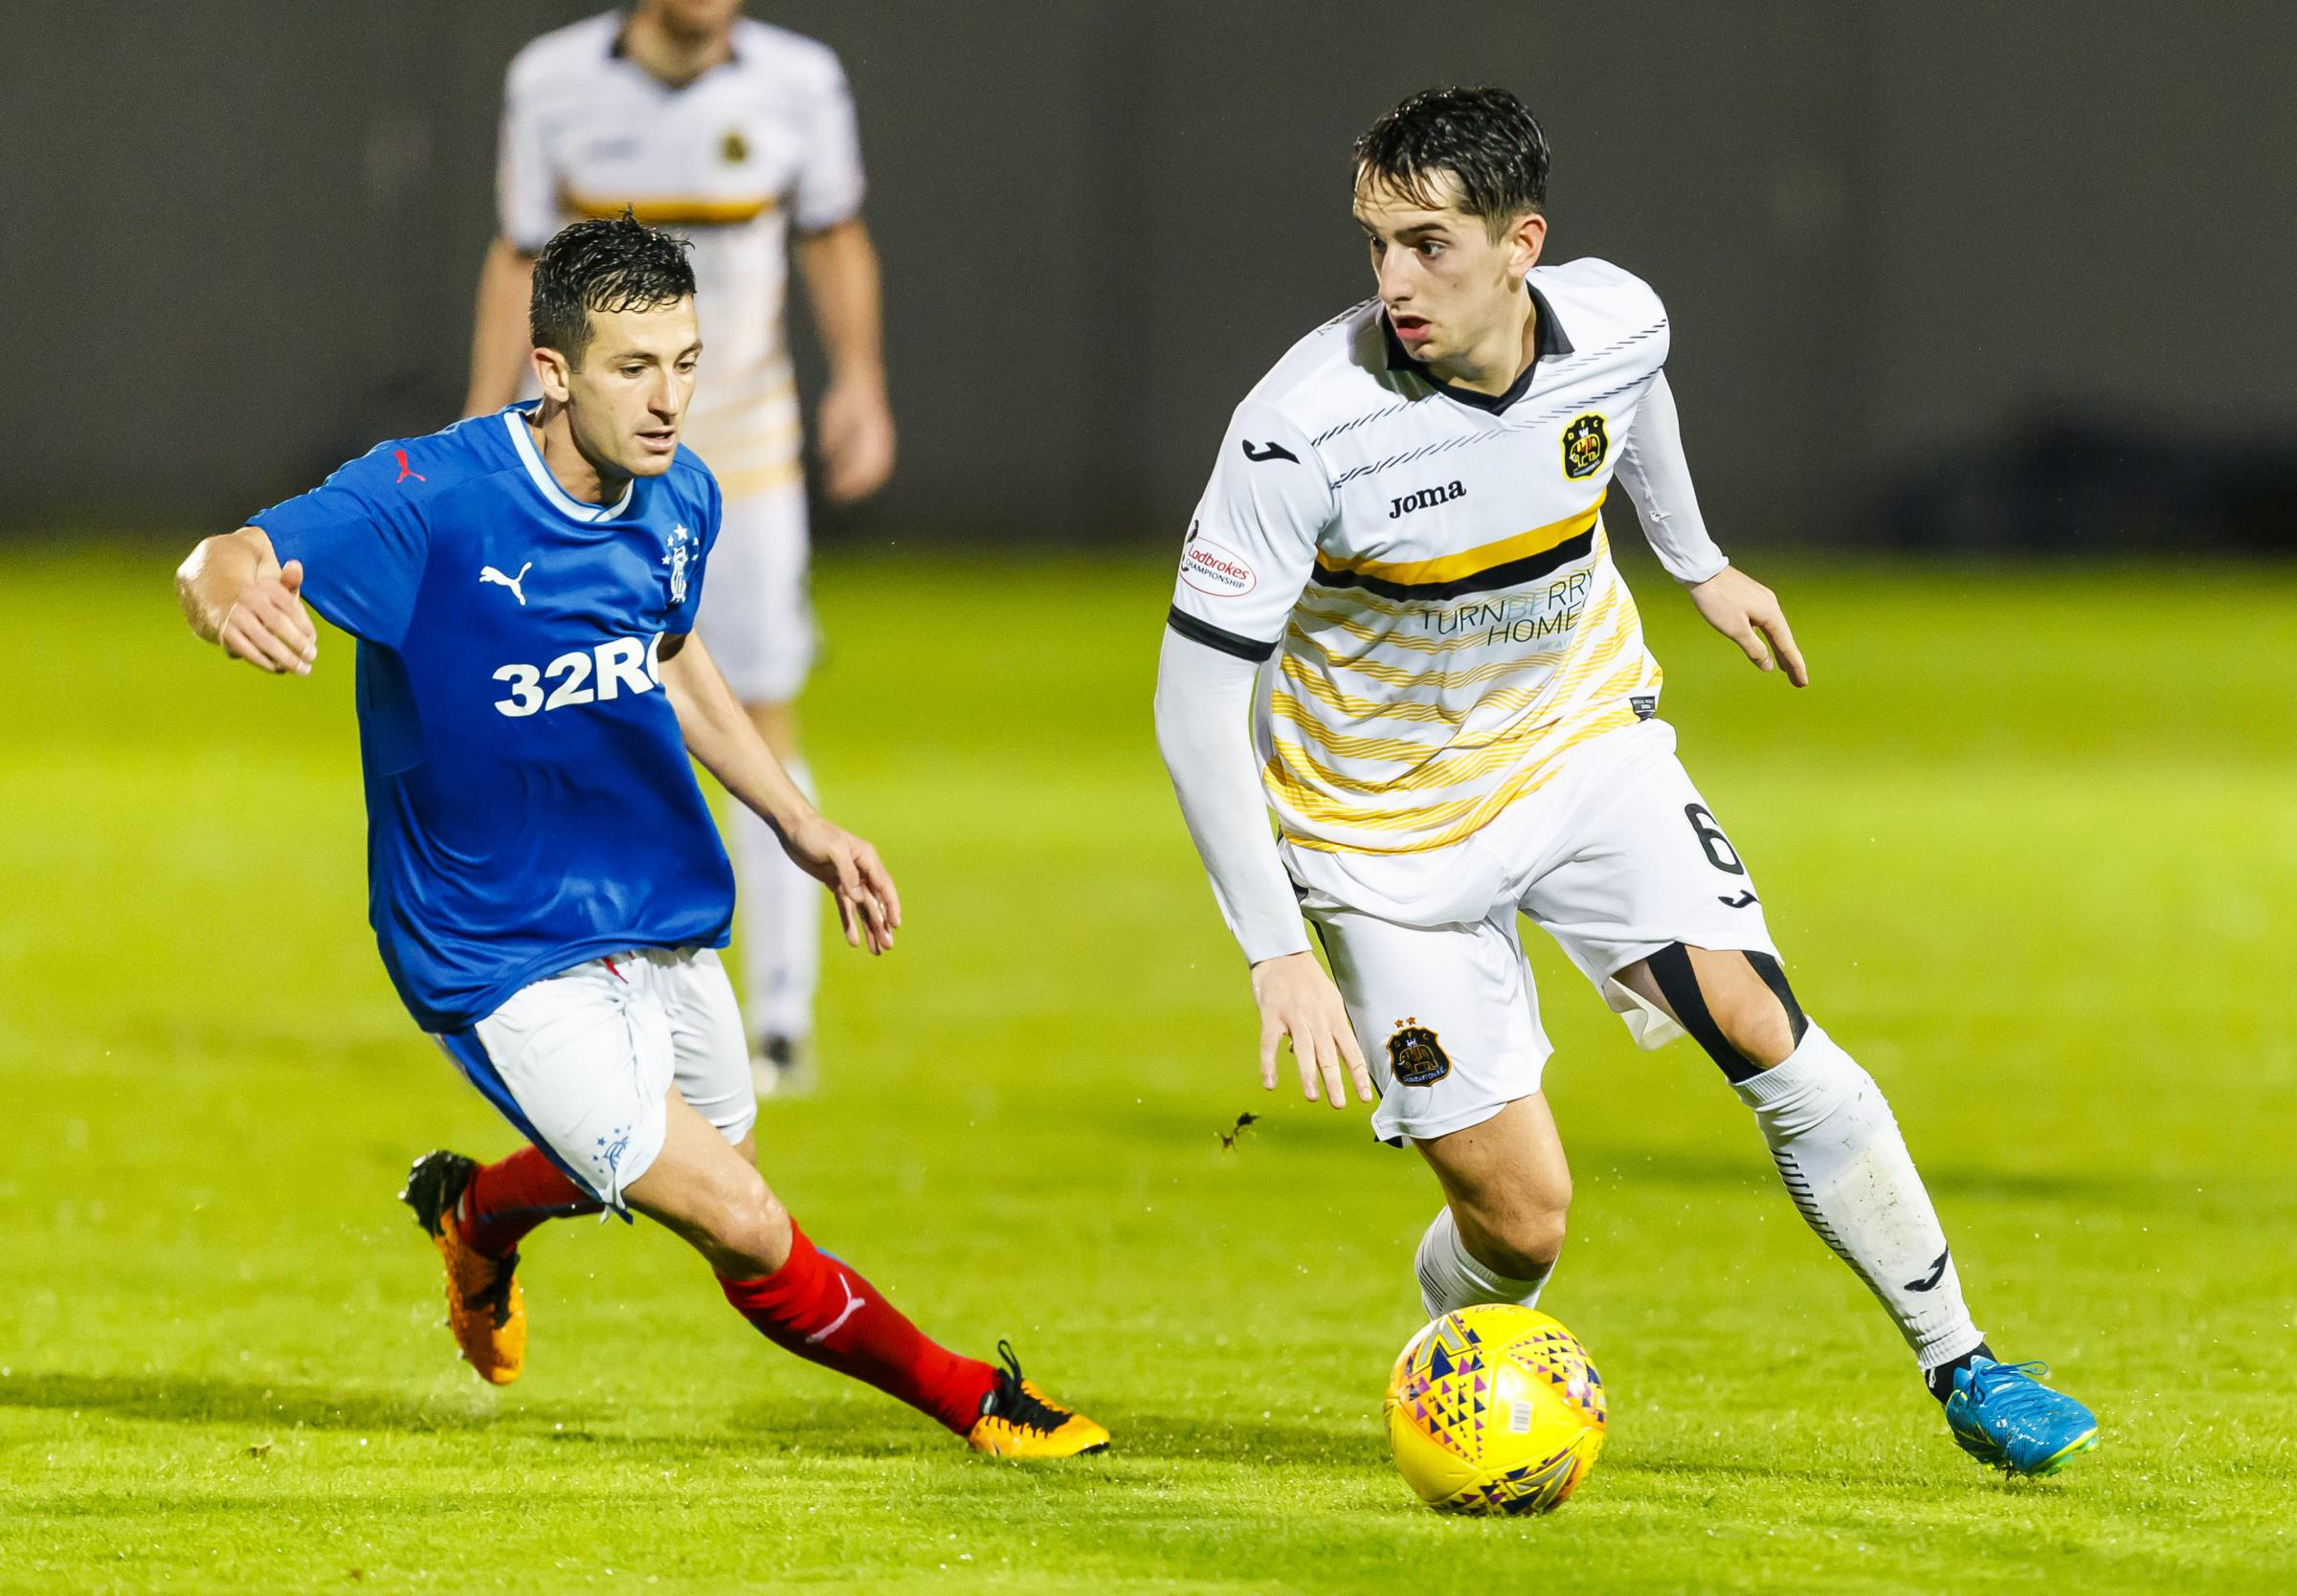 Jason Holt in action against Dumbarton